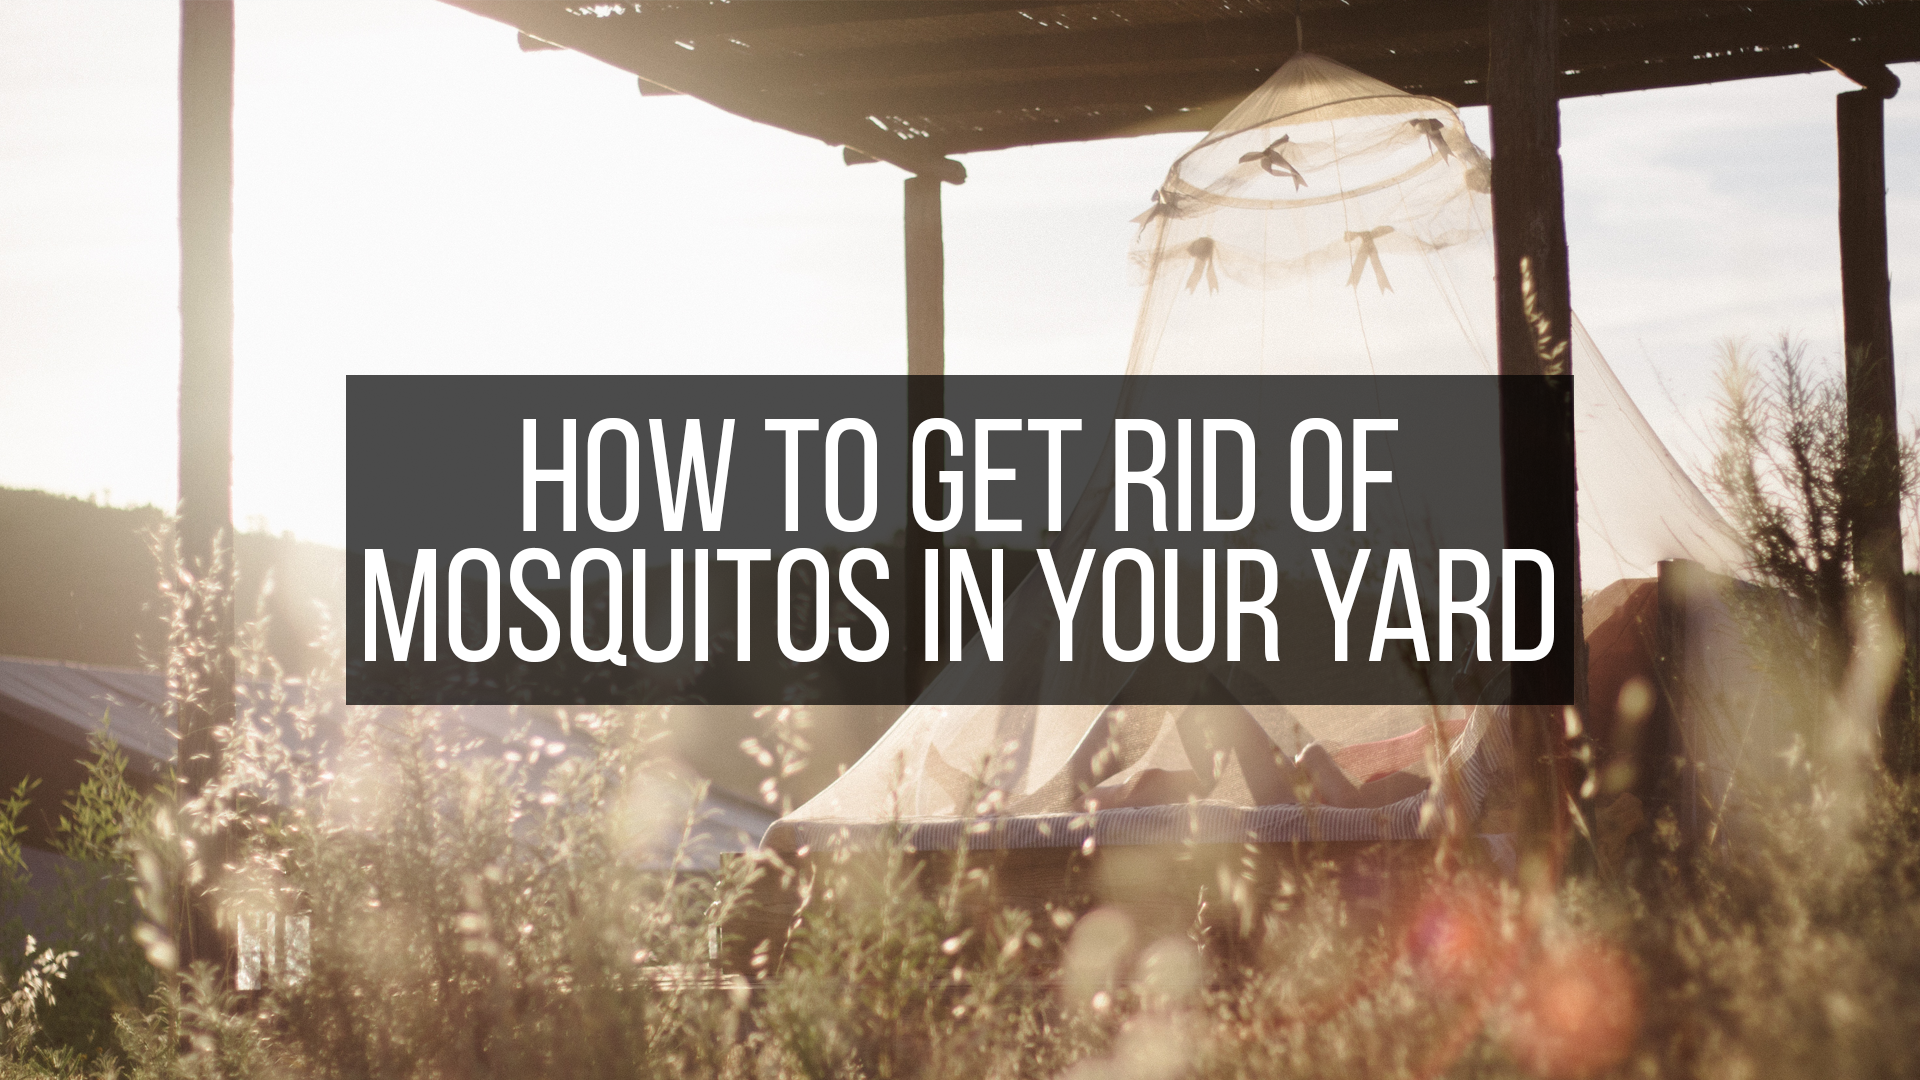 how to get rid of mosquitos featured image